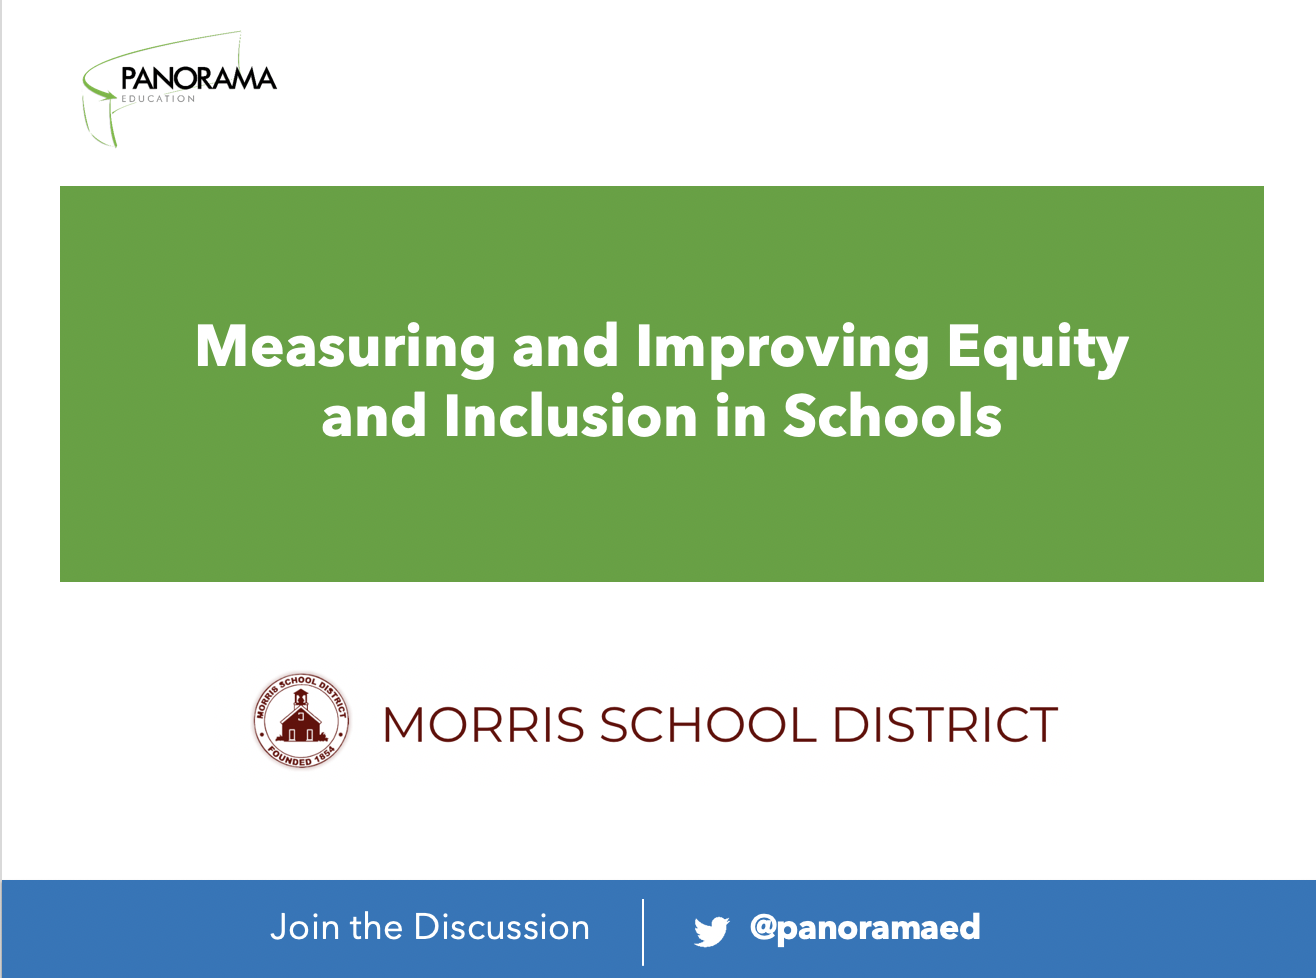 Measuring and improving equity and inclusion in Schools by Panorama